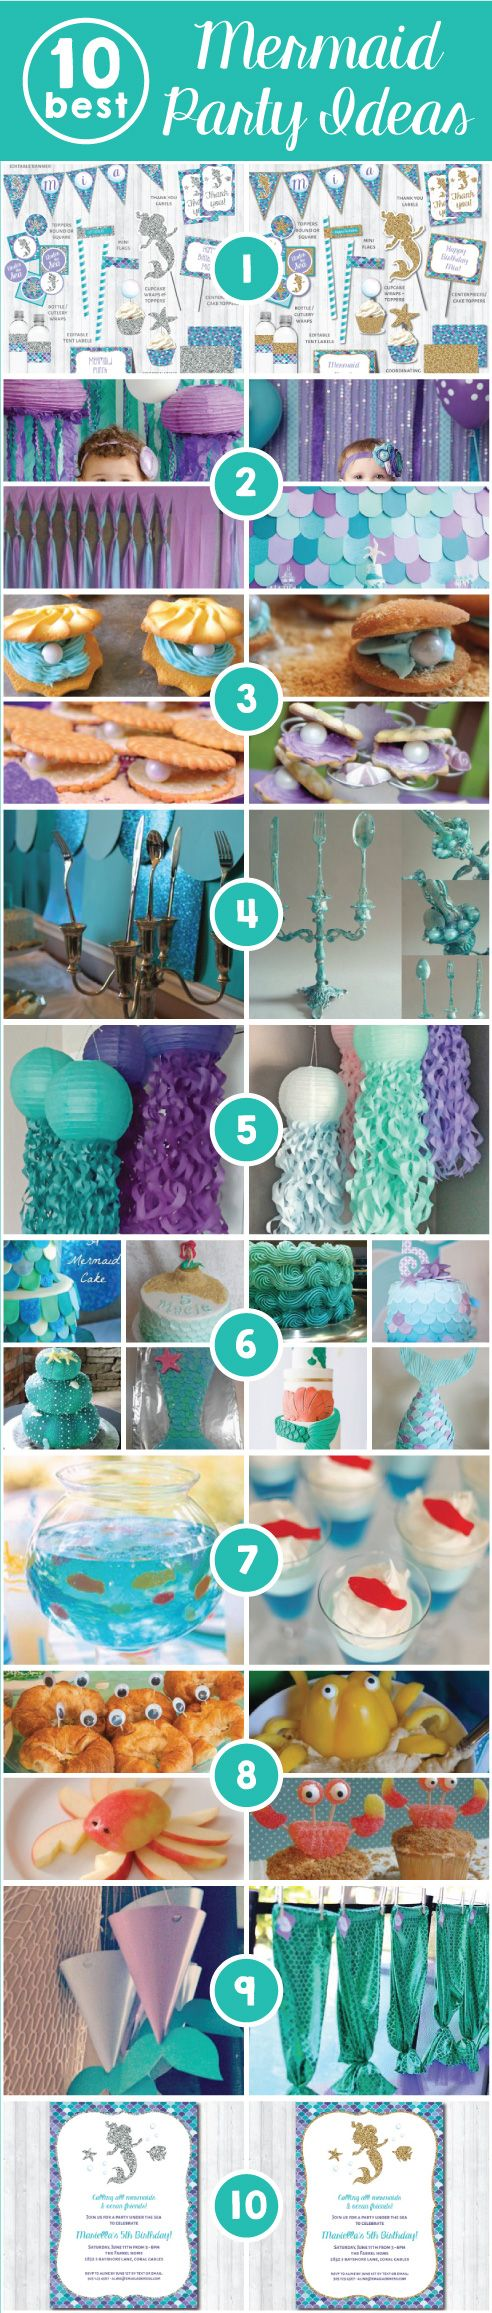 10 BEST Mermaid Party Ideas! Click to see details! WonderBash